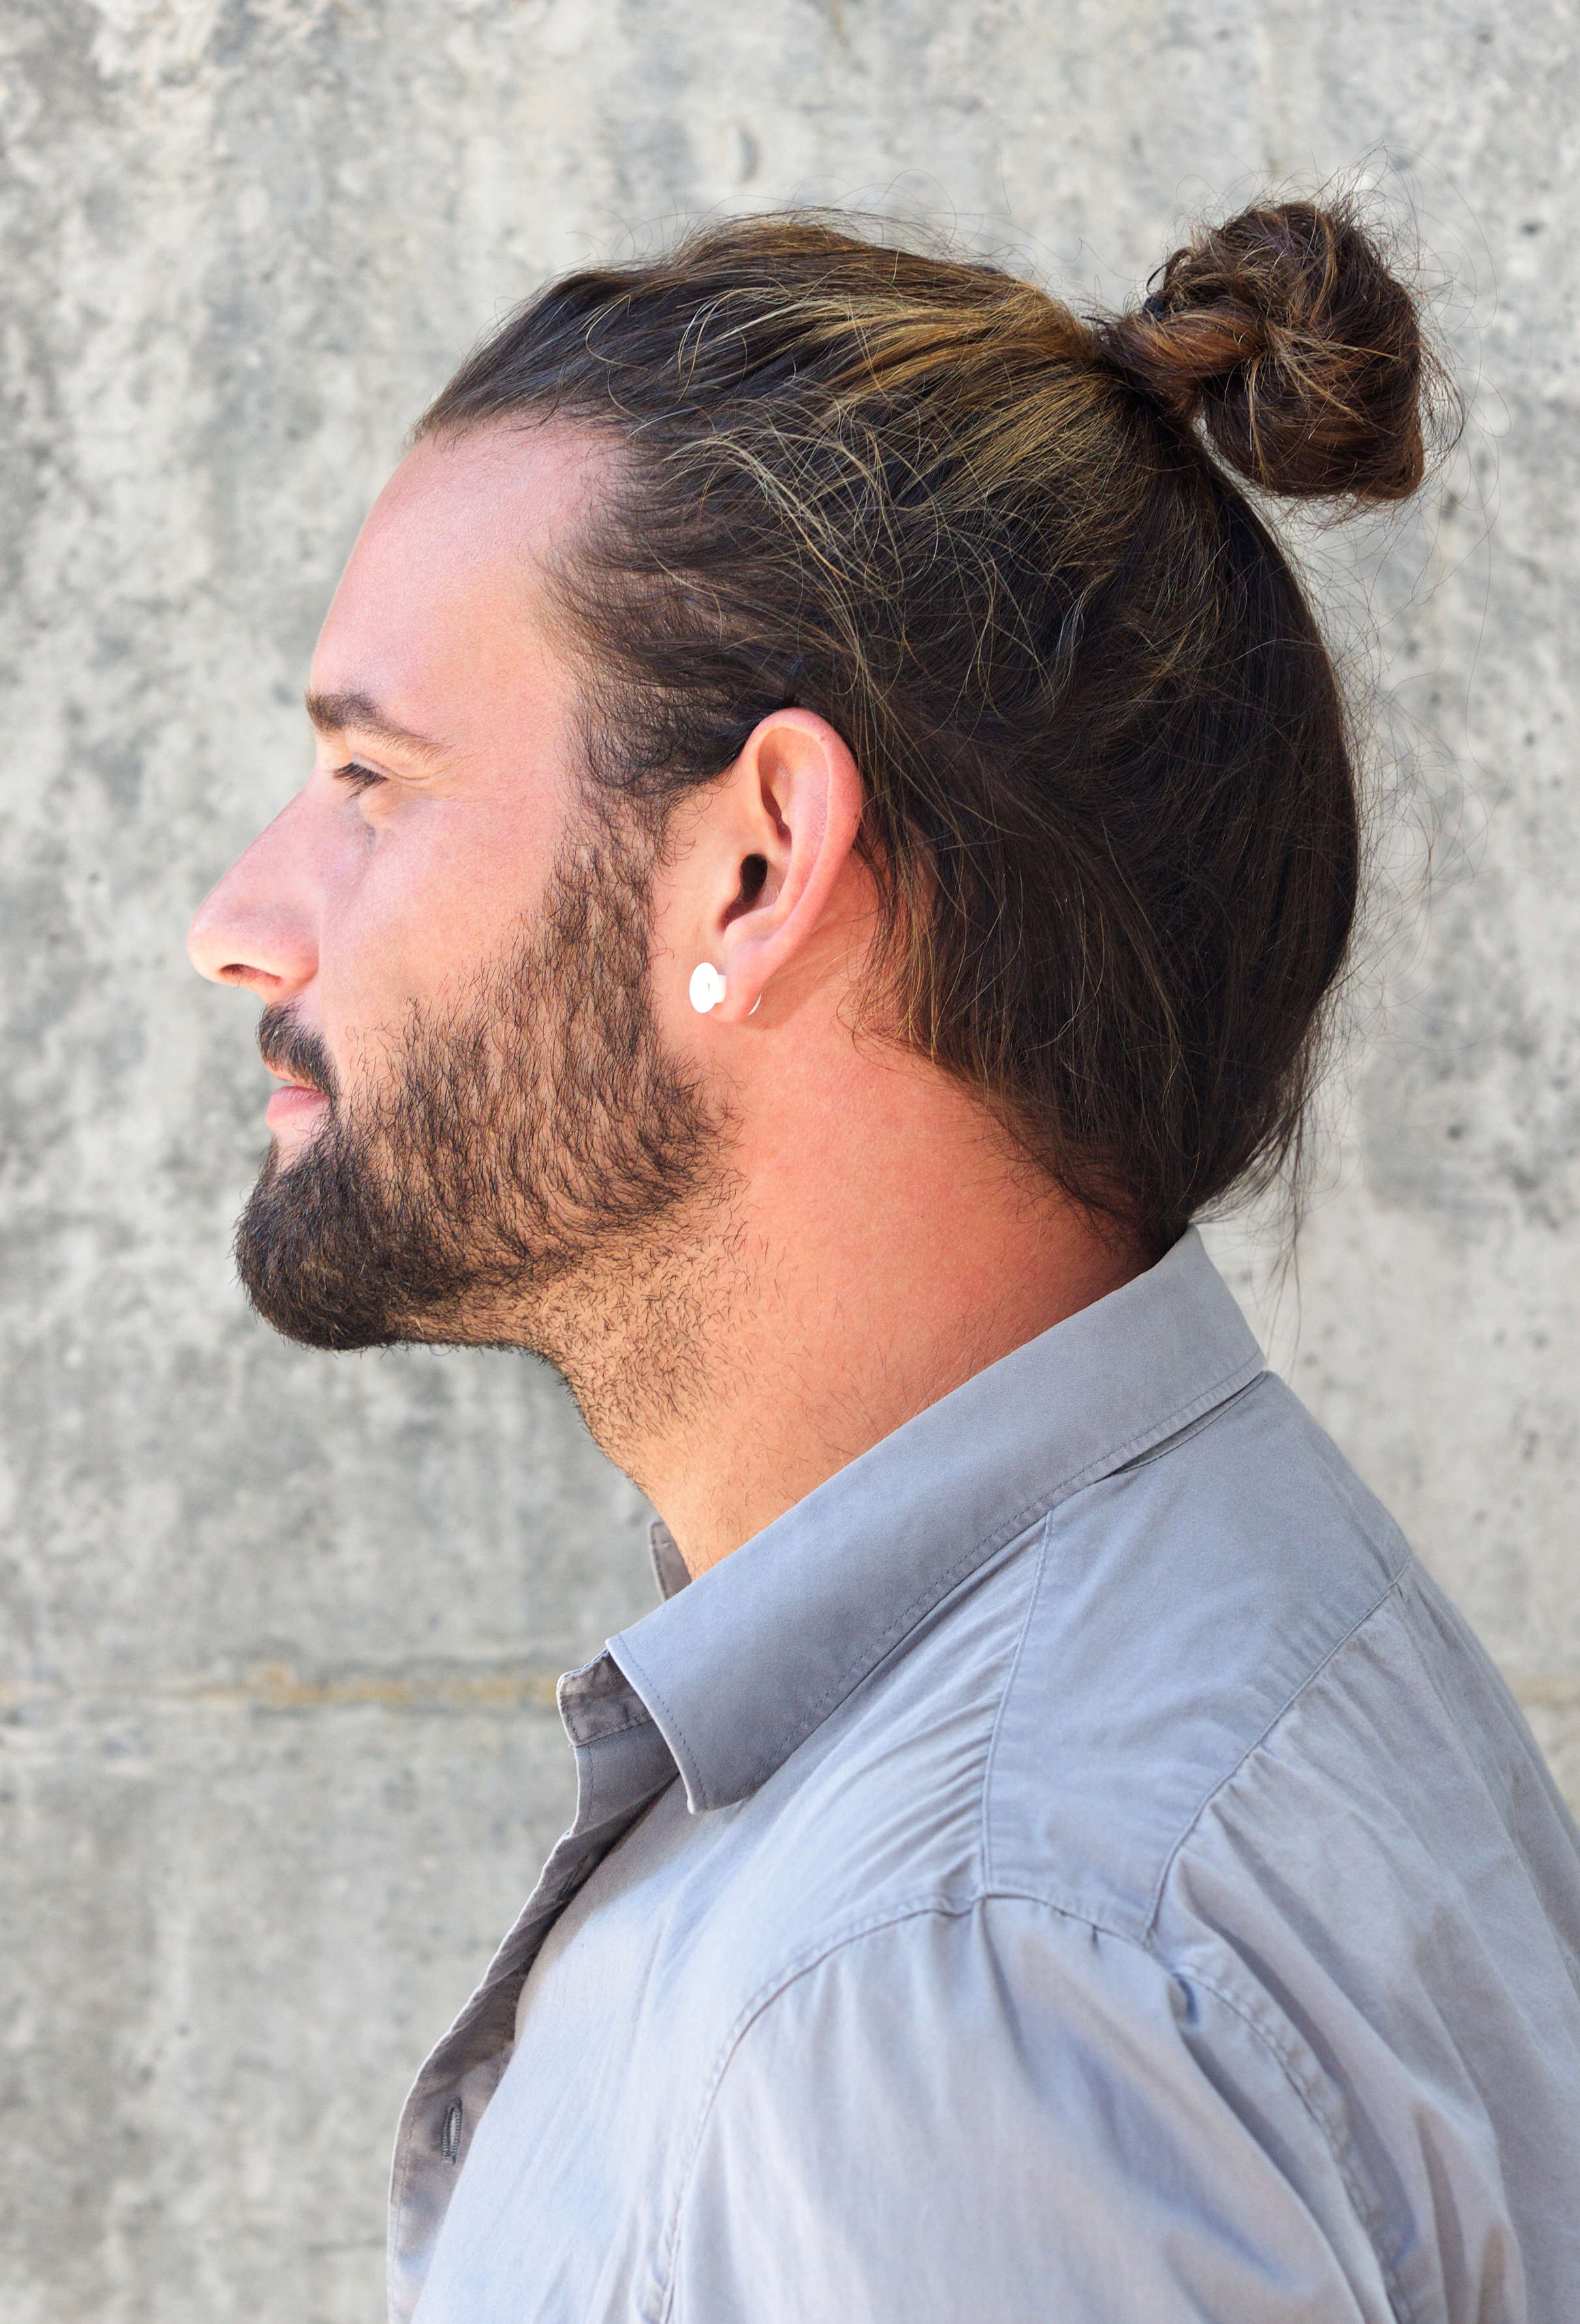 Best man bun top knot styles. The Top Knot Hairstyle Visual Guide For Men 7 Different Styles